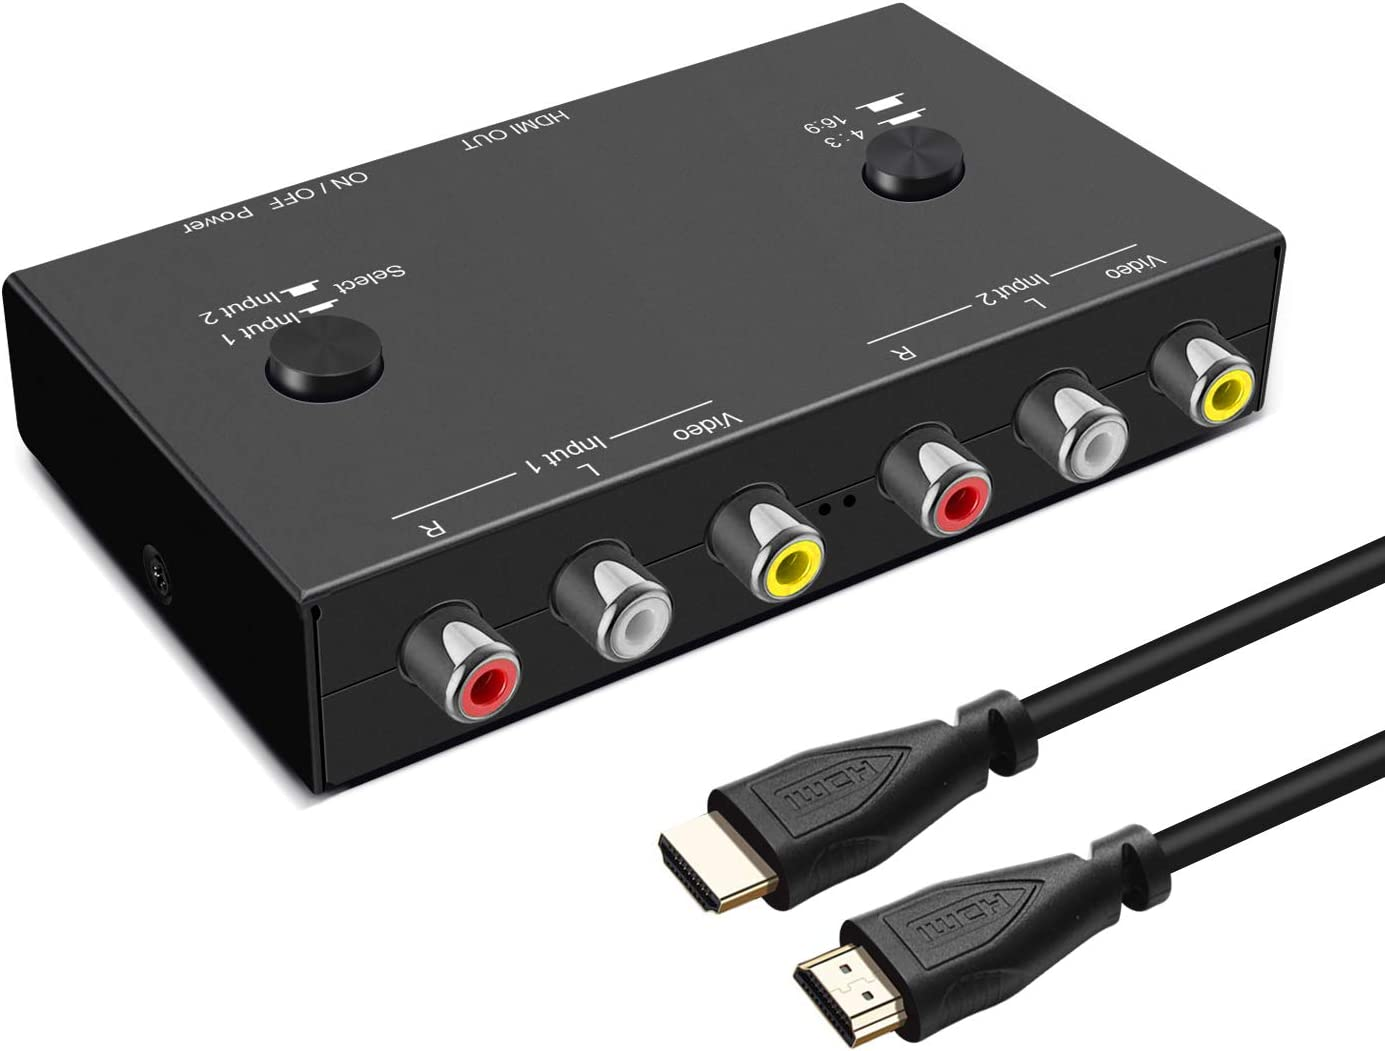 2 RCA to HDMI, 1080P 2 Way RCA Composite CVBS AV Switch to HDMI Video Audio Converter Adapter Supporting 4:3/16:9, for PC Laptop Xbox PS2 PS3 N64 NGC SNES WII VHS VCR Camera DVD